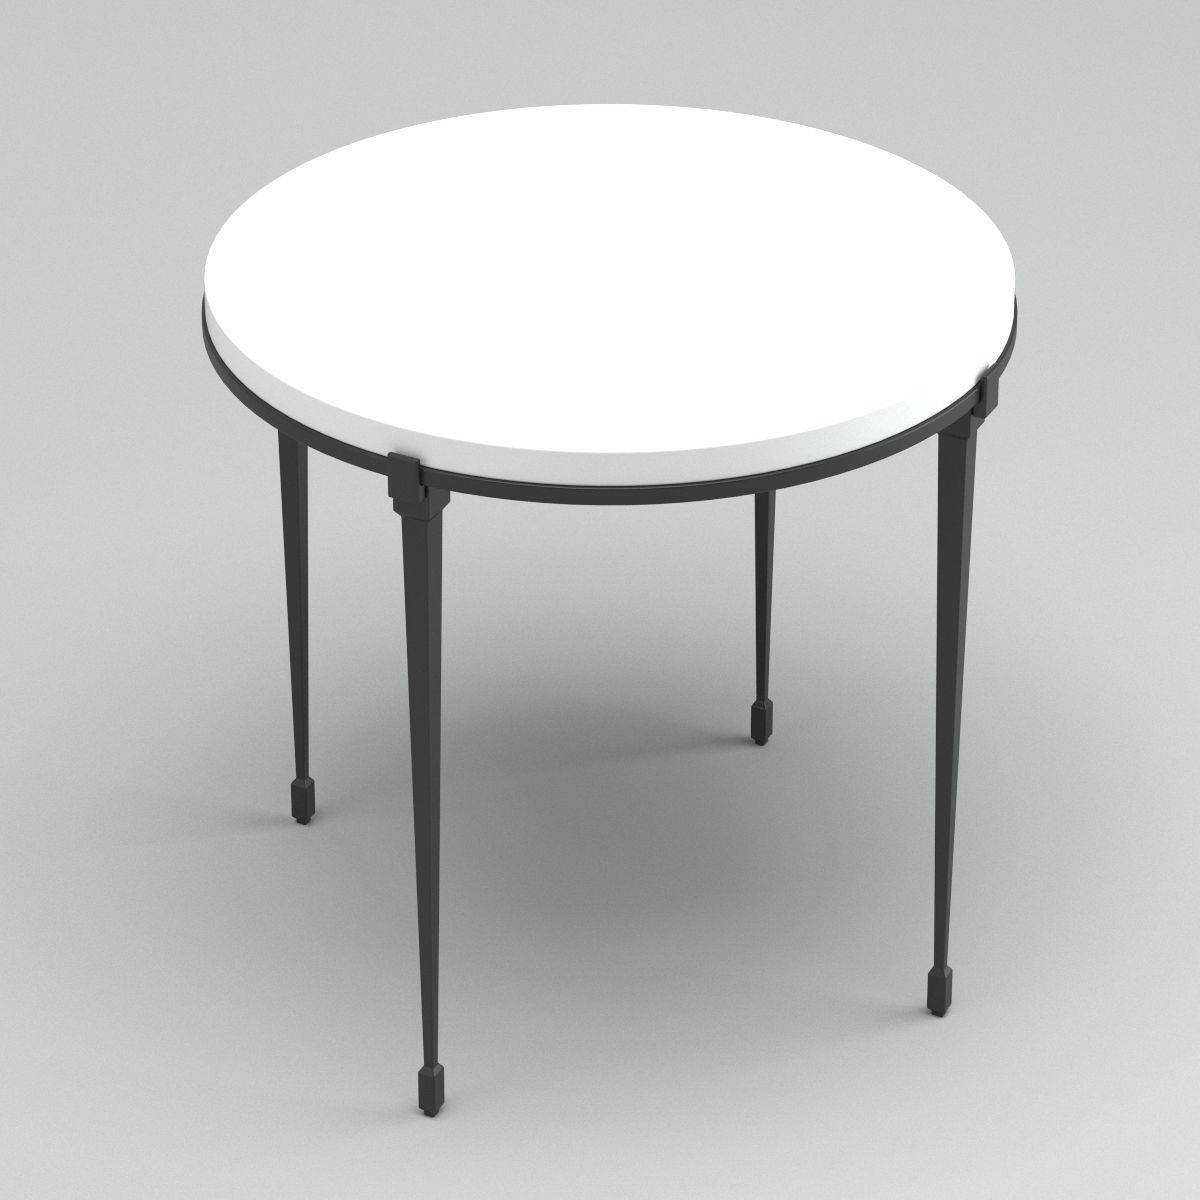 White Metal Circle Coffee Table 3D Model Max Obj Fbx Mtl for Circle Coffee Tables (Image 30 of 30)